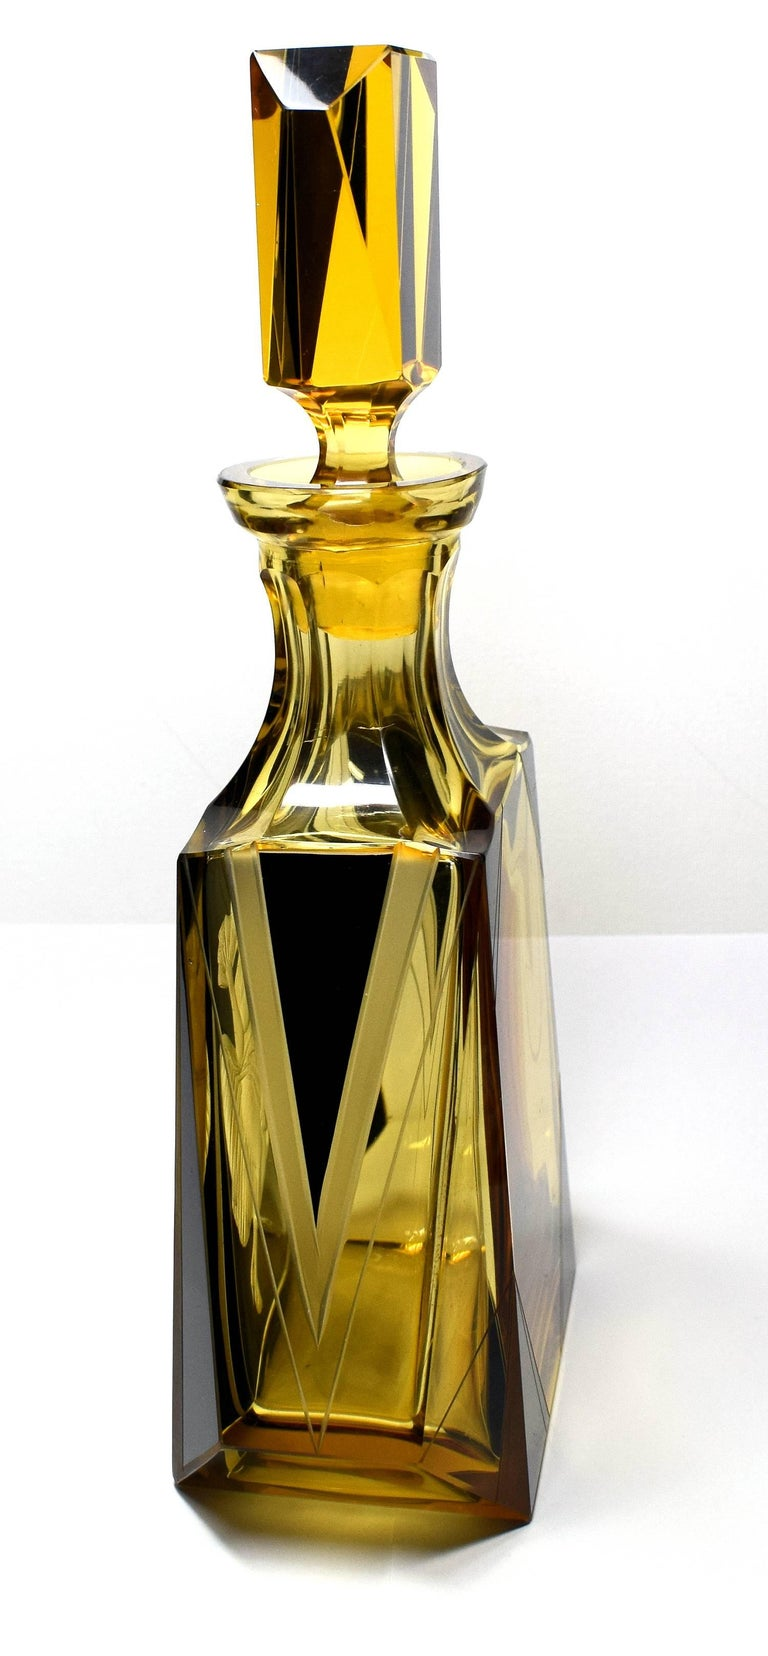 High Style Art Deco Whisky Glass and Enamel Decanter Set by Karl Palda For Sale 3